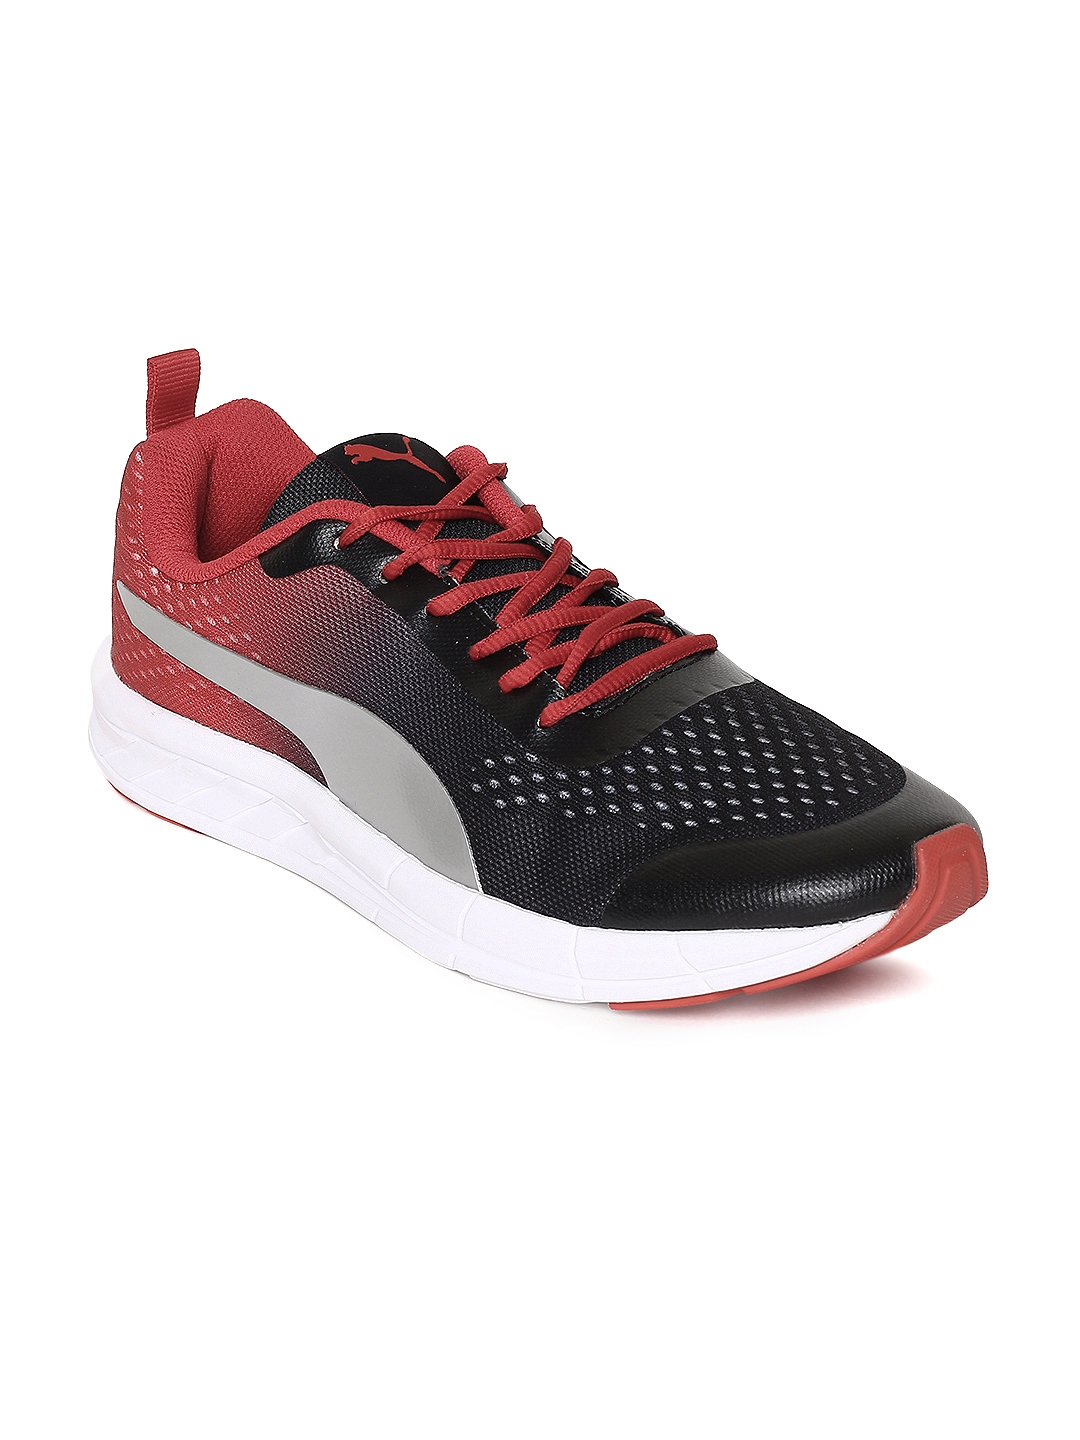 Buy Puma Men Black   Red Feral Runner Running Shoes - Sports Shoes ... d4f931d83